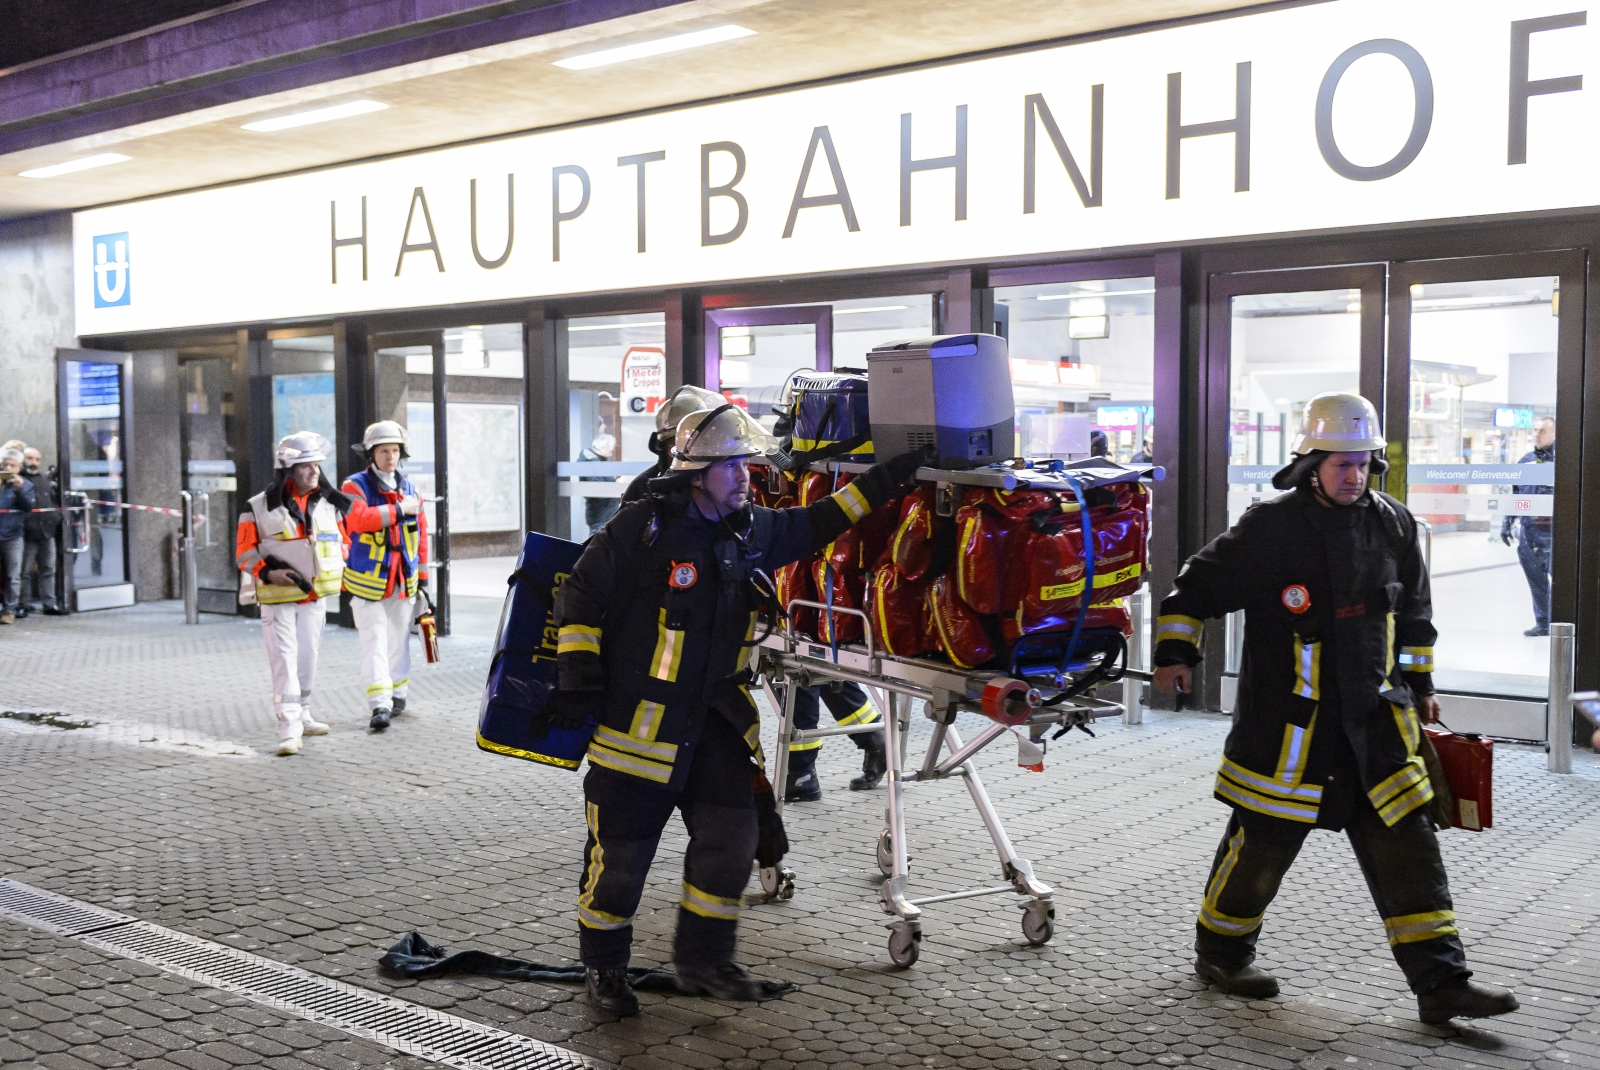 Dusseldorf train station attack